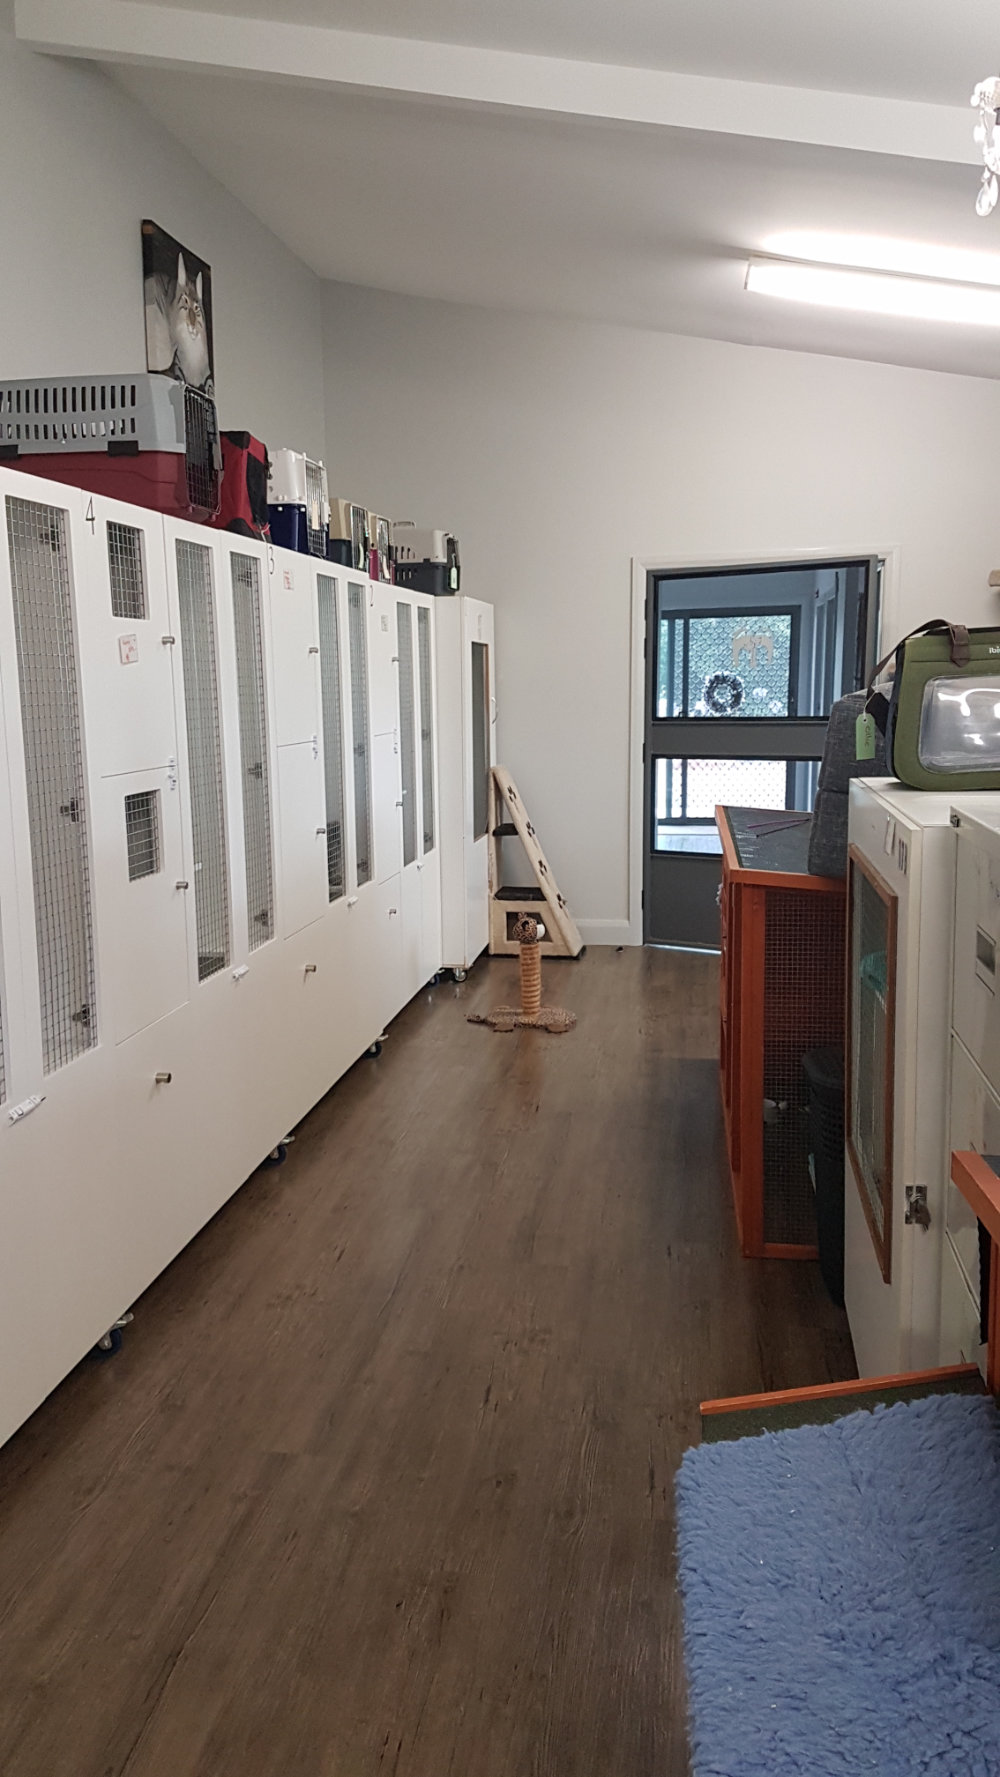 Cattery cat enclosures